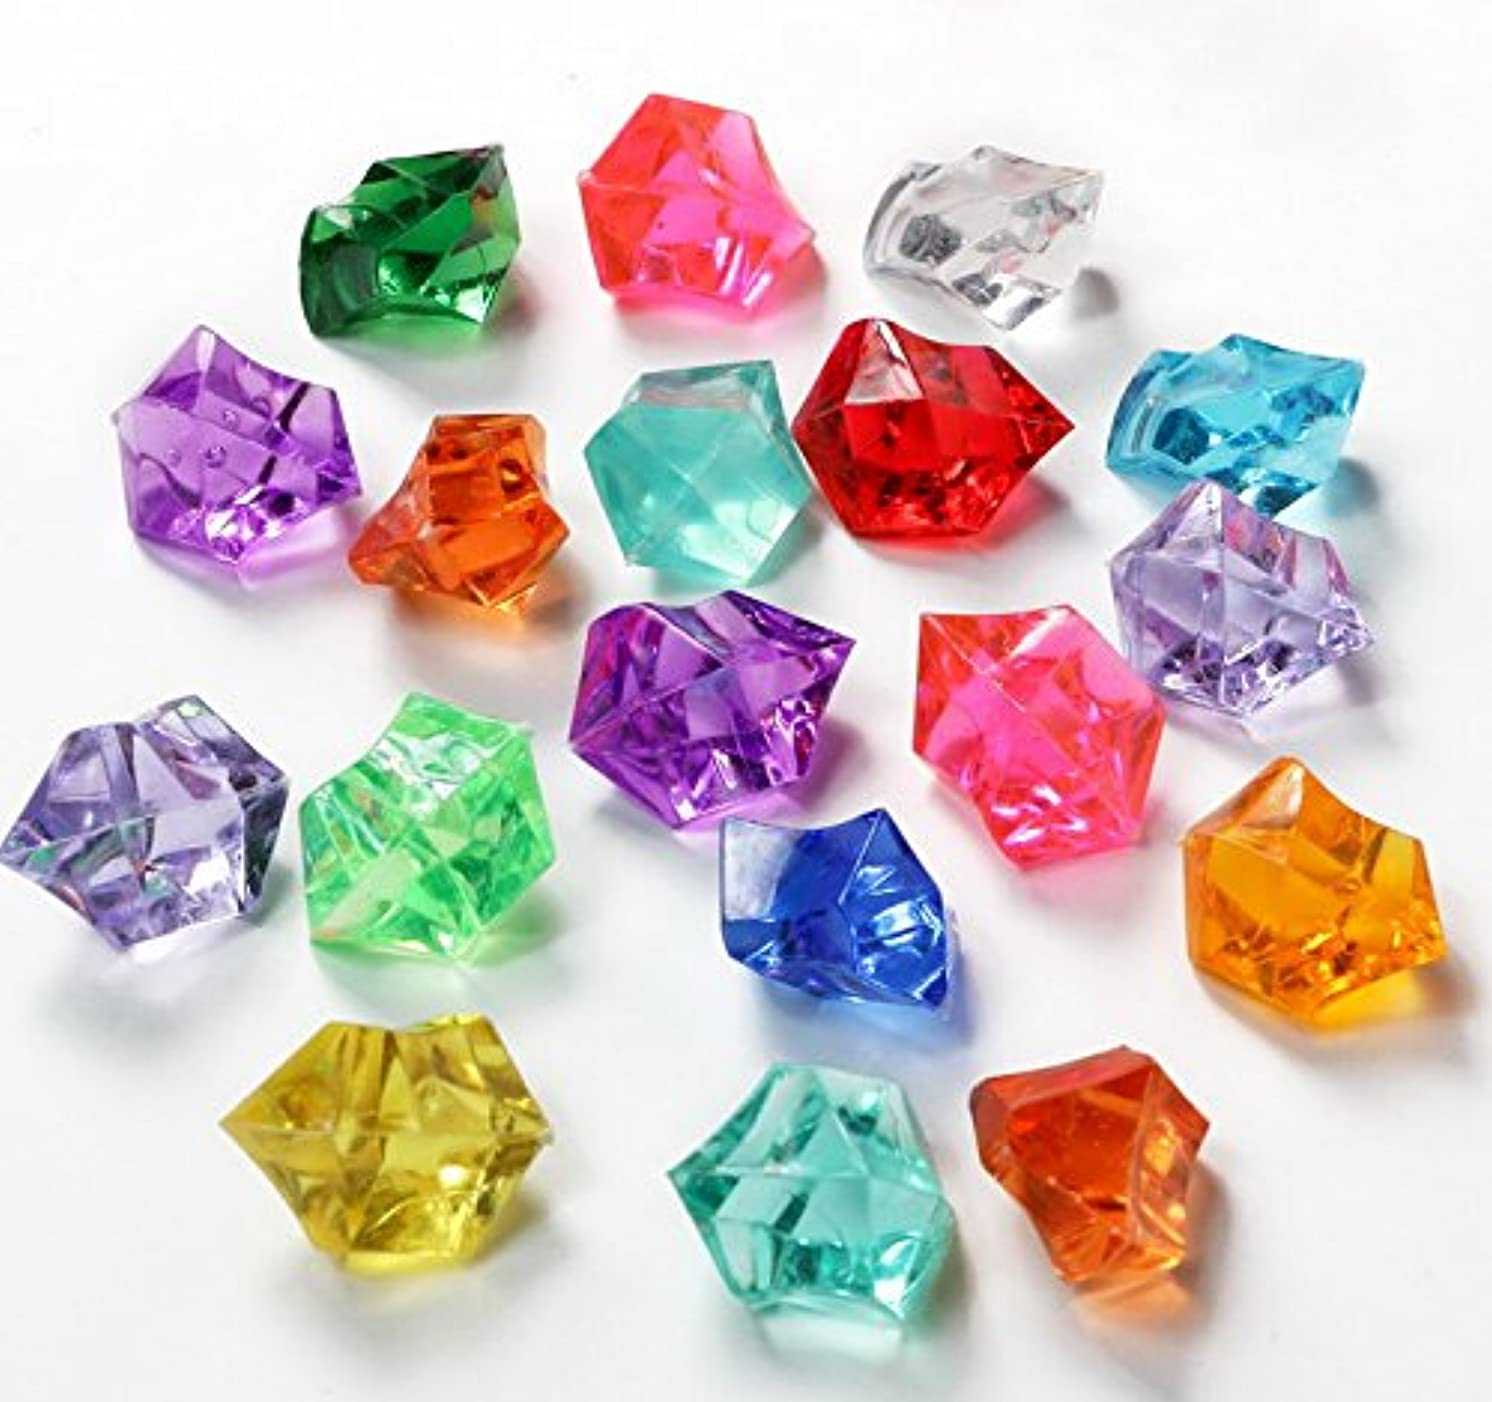 AScreavention Translucent Acrylic Ice Rocks Crystals Gems for Vase Fillers, Table Scatters, etc. 300gram (Random Mix Colors)